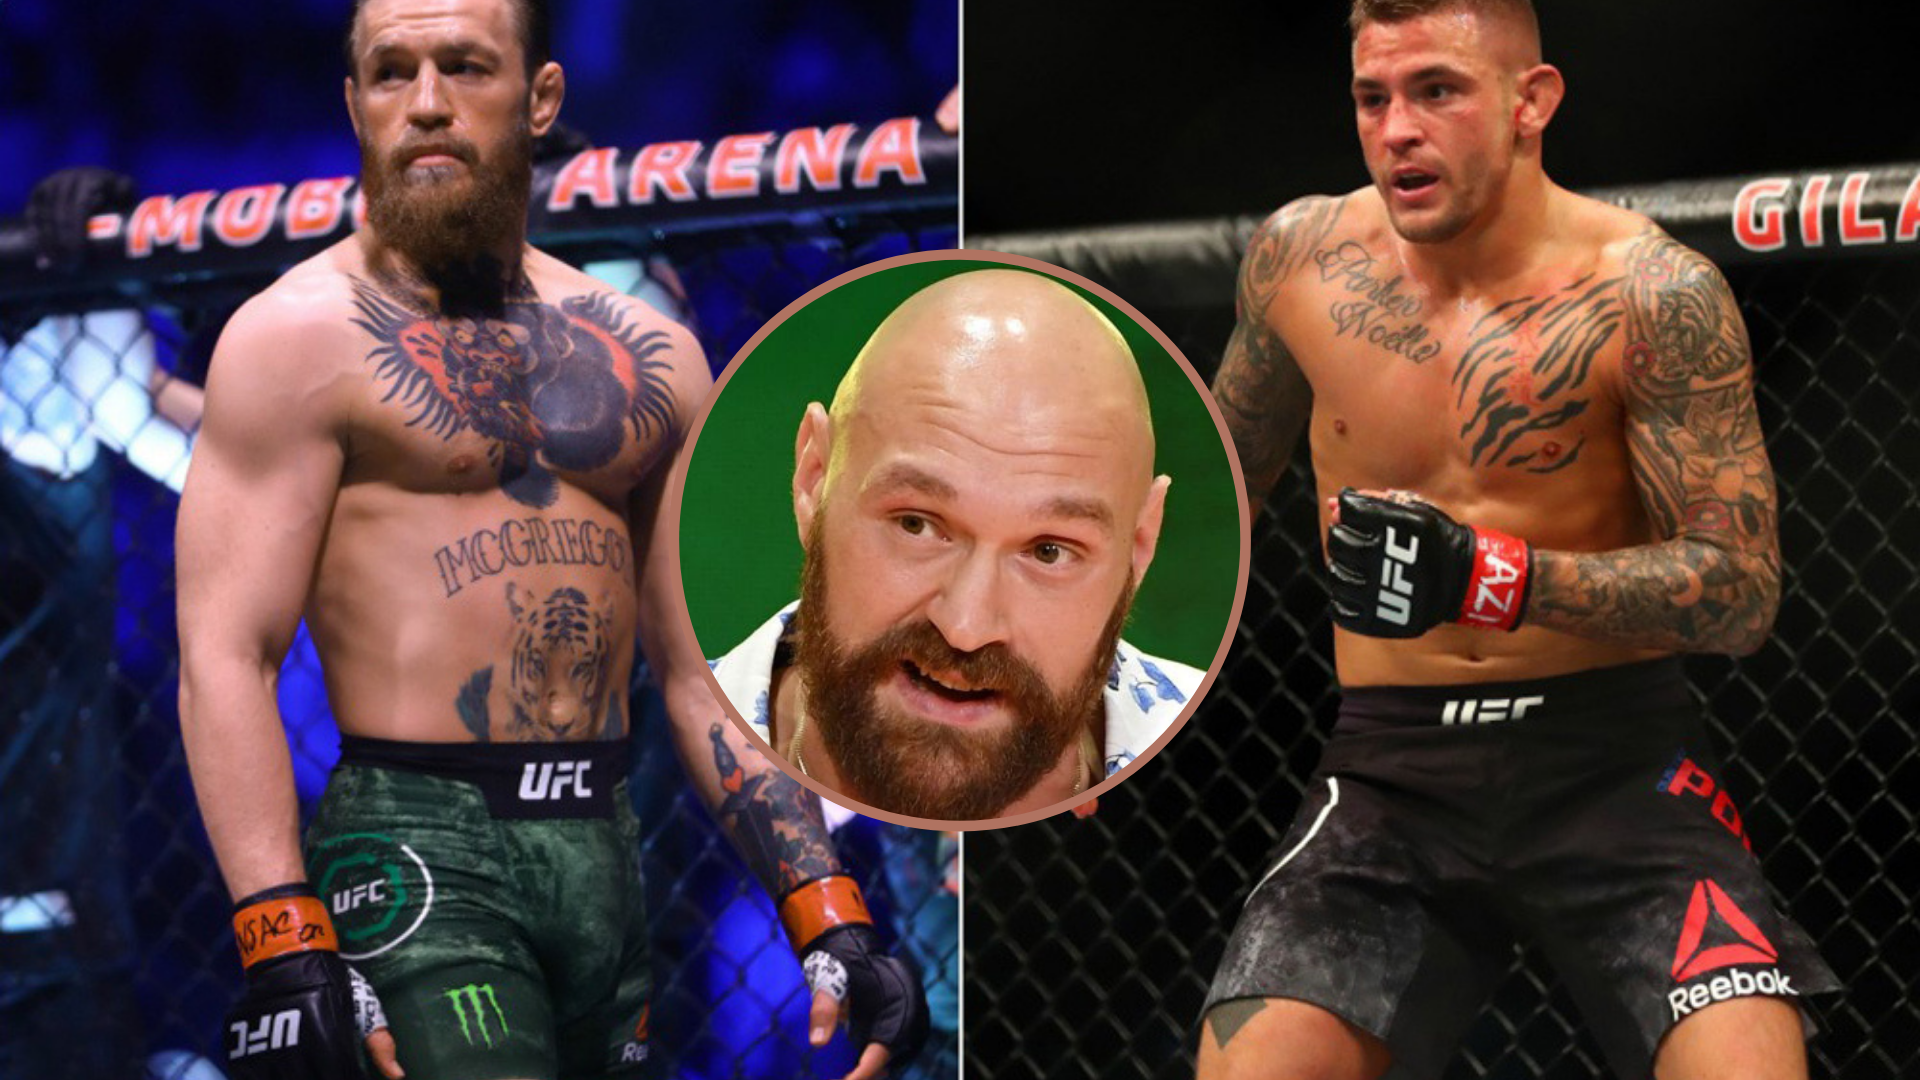 Tyson Fury says Conor McGregor would beat Dustin Poirier in the trilogy - Tyson Fury